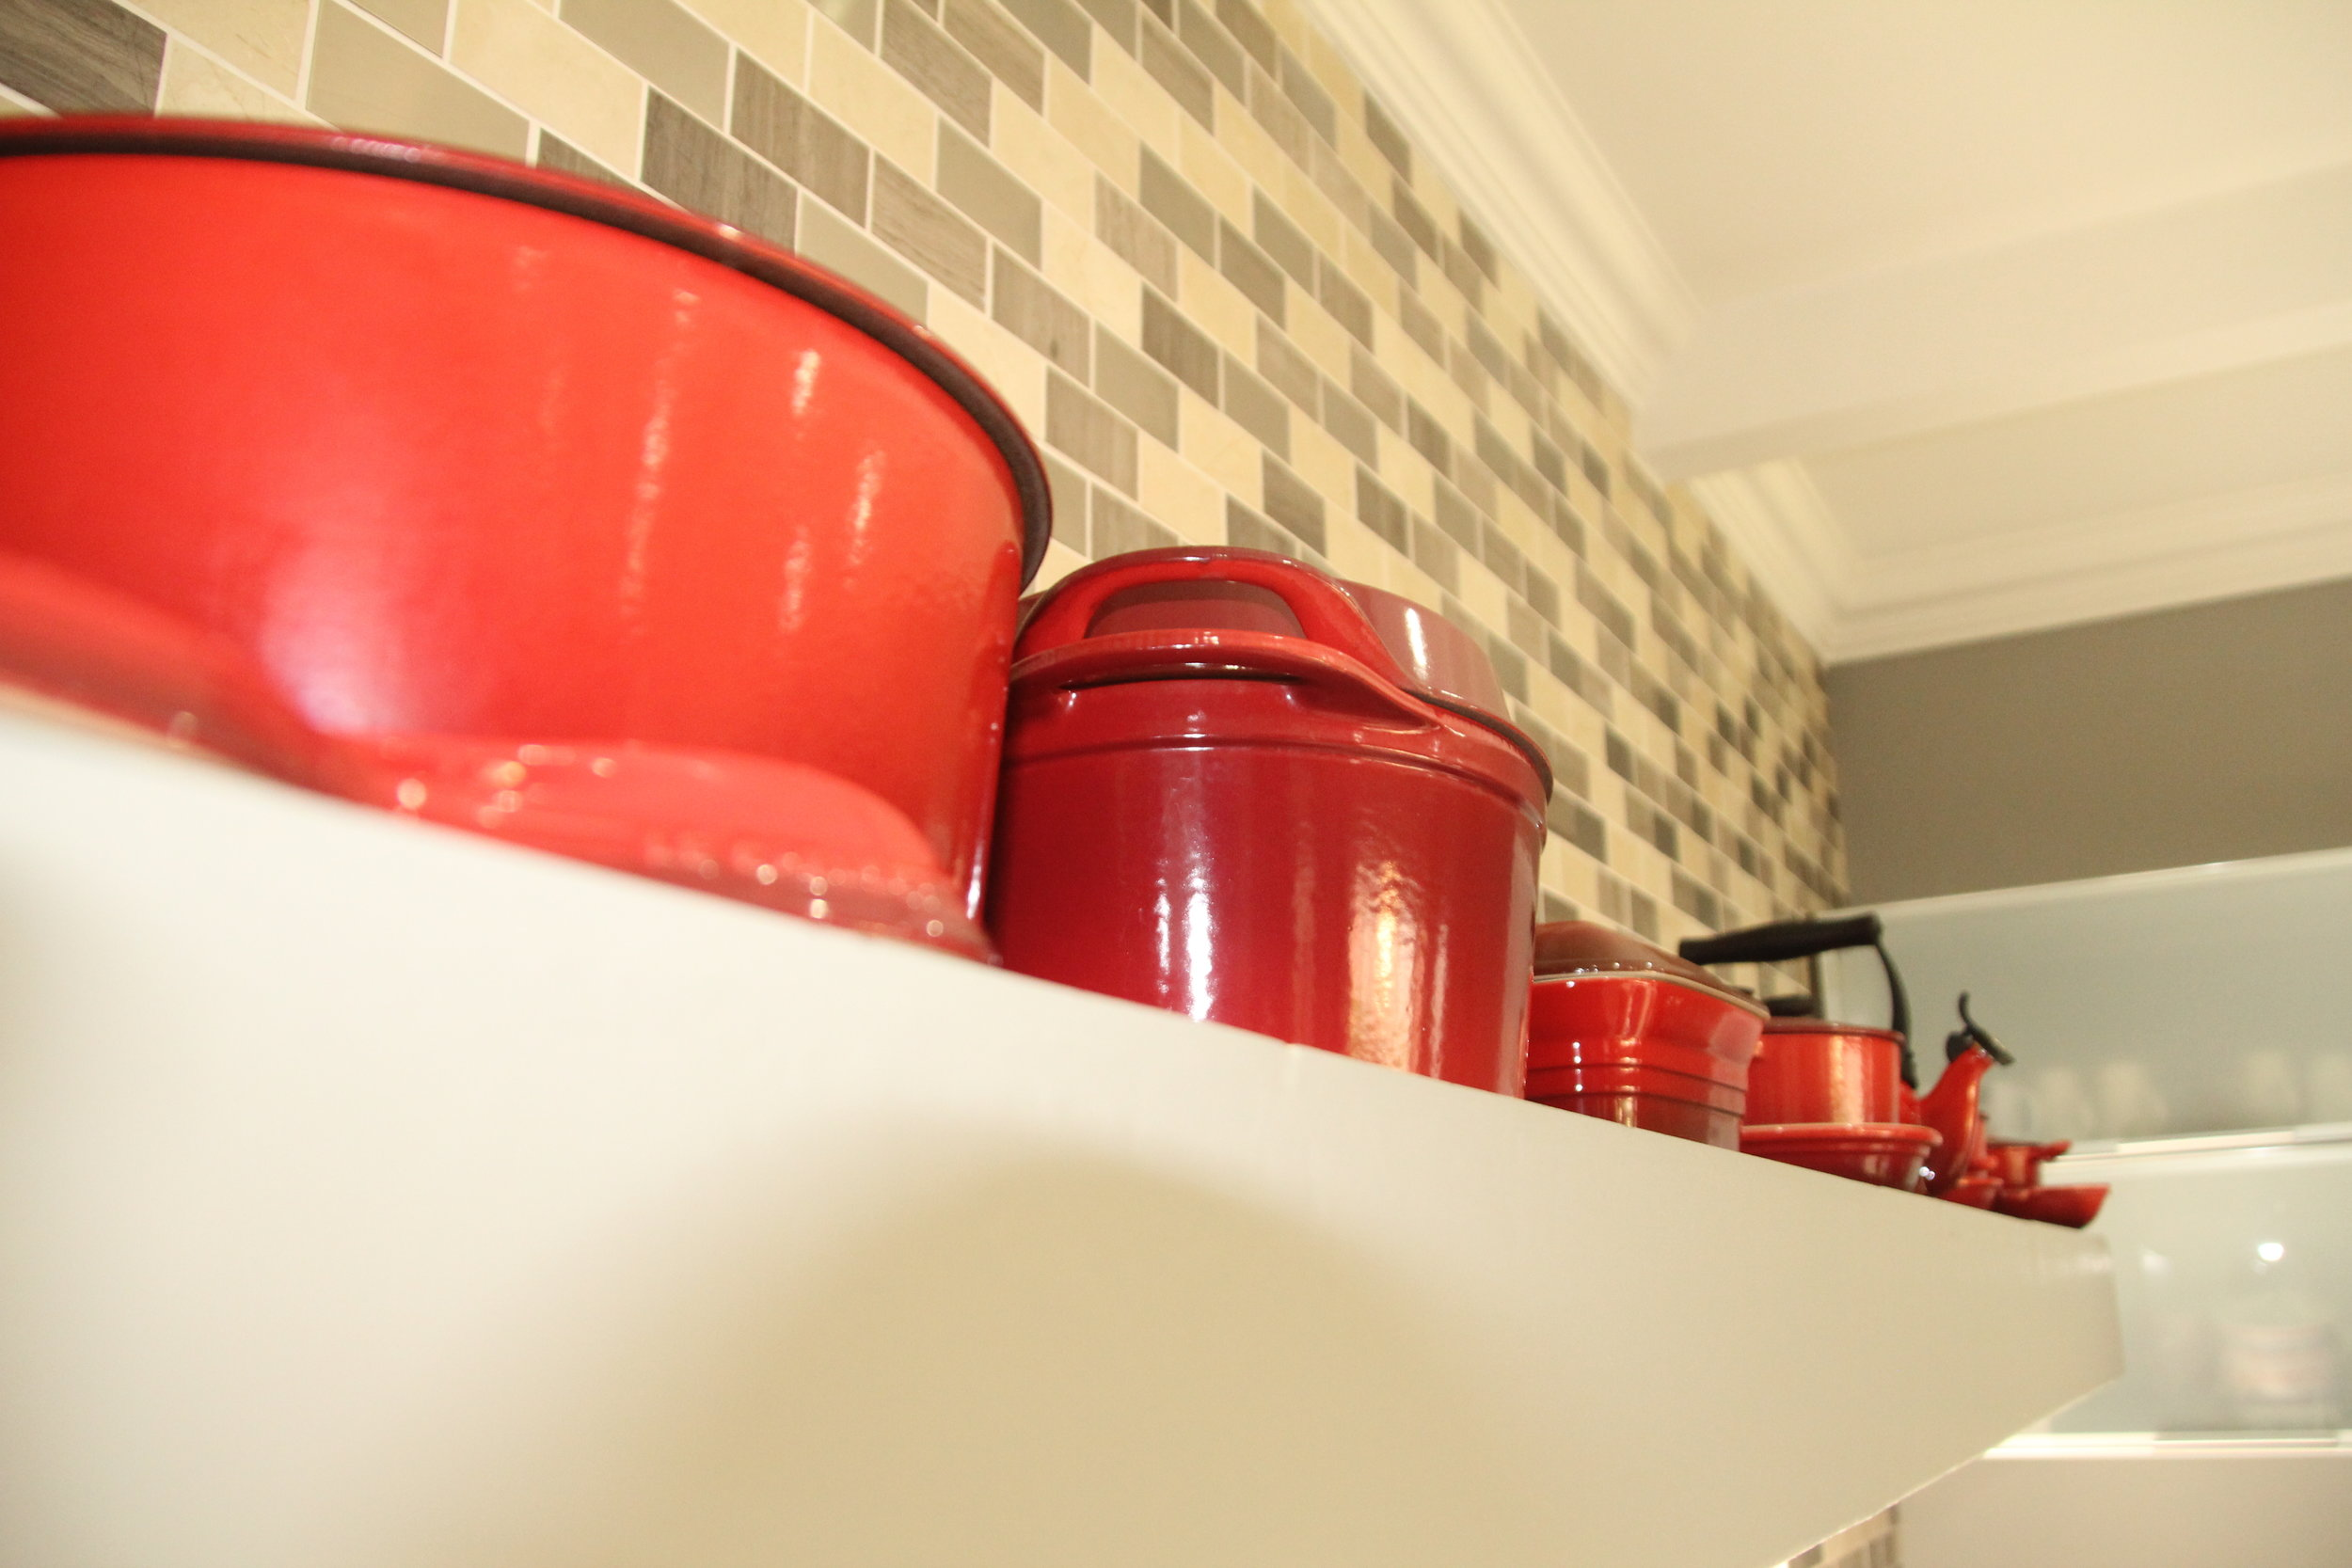 2 Le Creuset pots on display kitchen.JPG